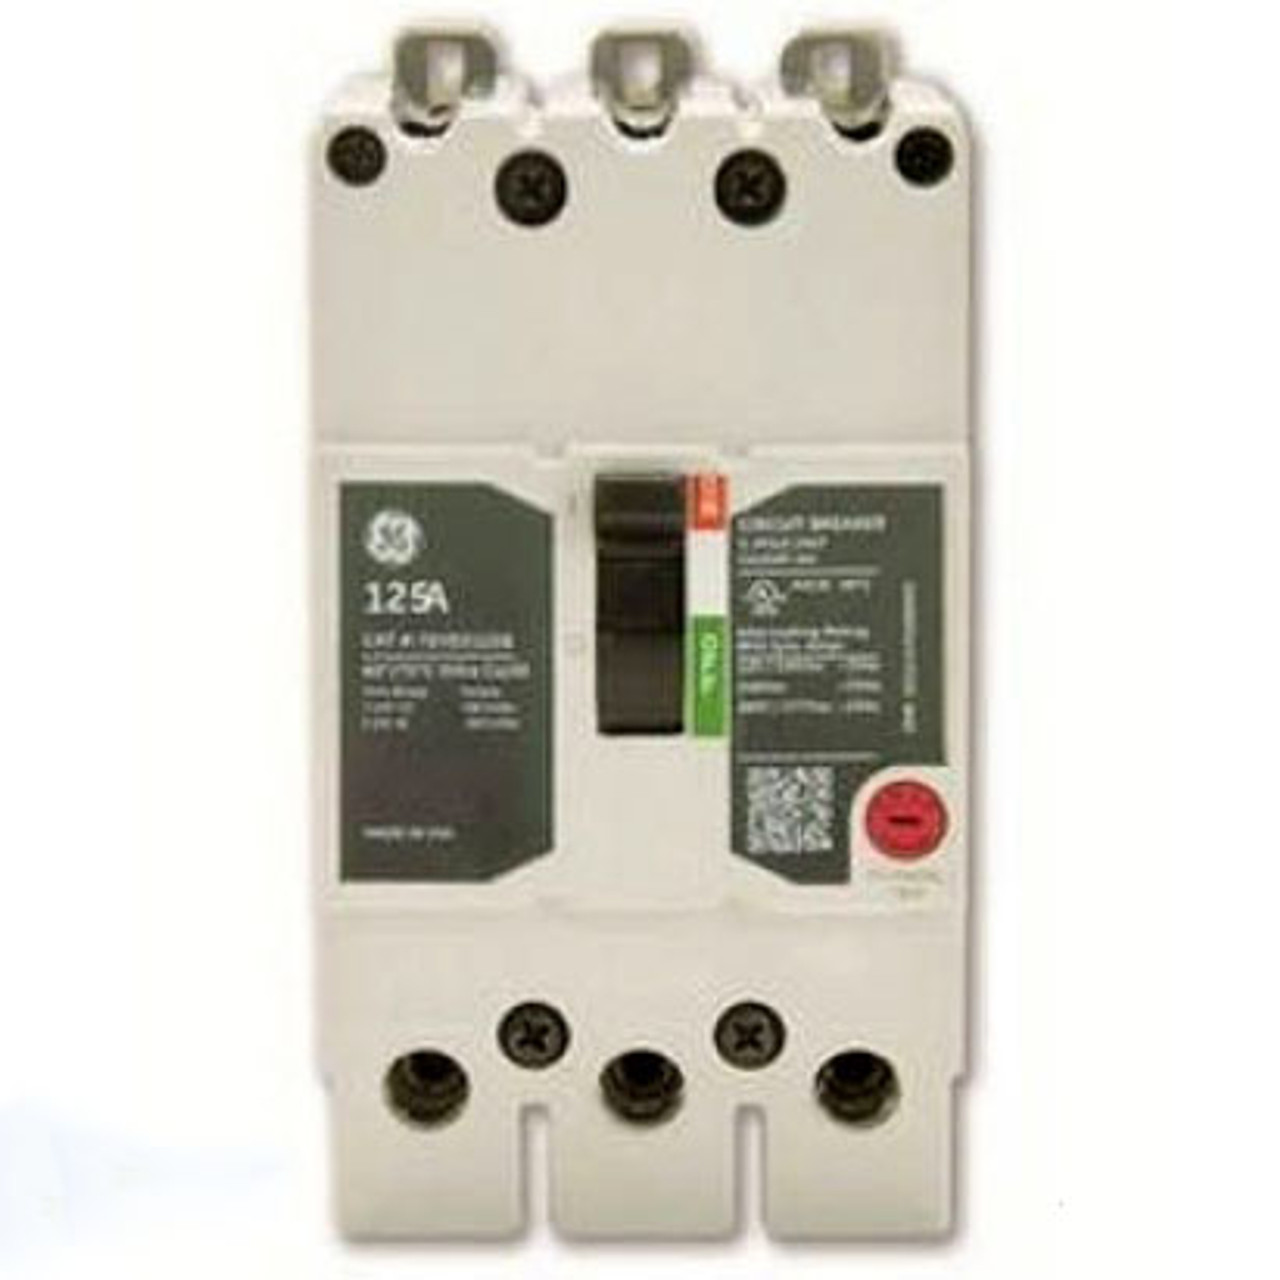 General Electric TEYD3070B 3 Pole, 70 Amp, 480 VAC, 25K Circuit Breaker - New Pullout